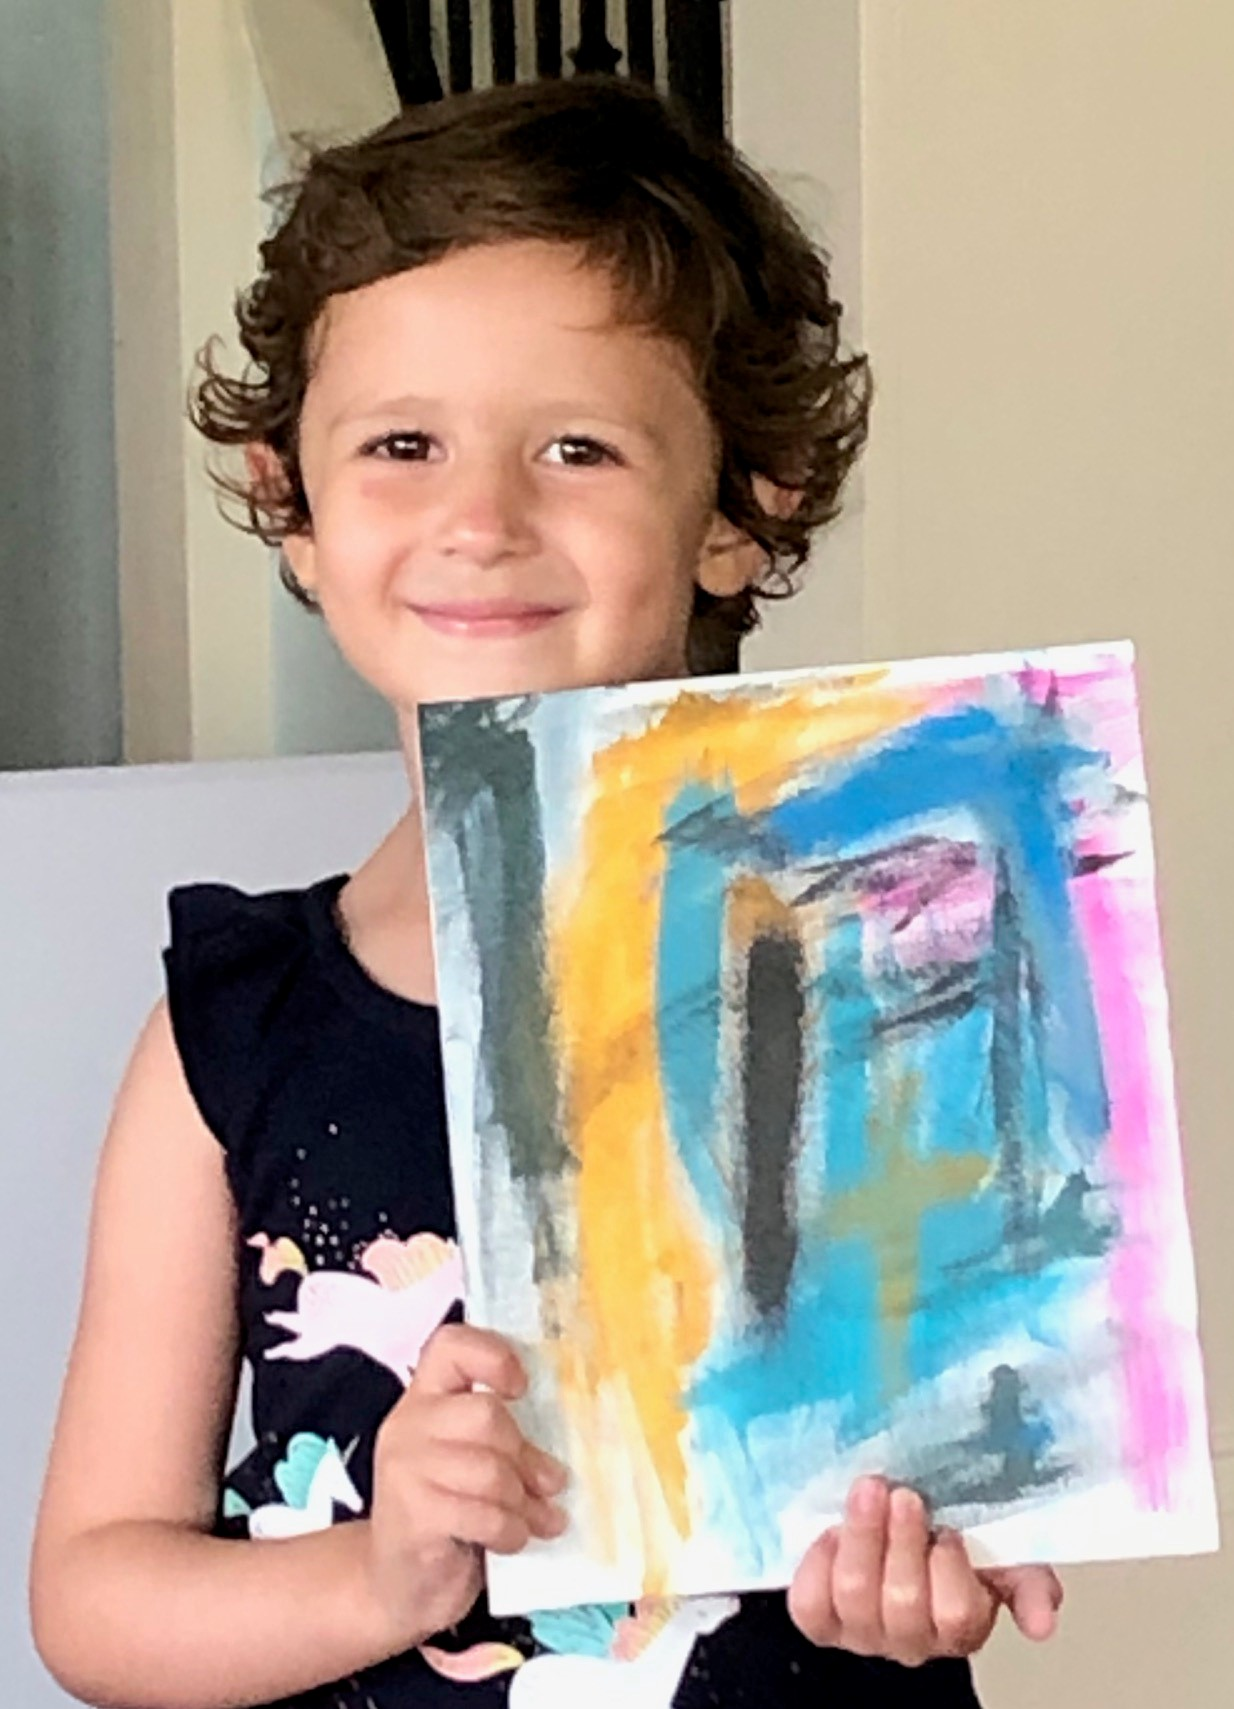 Josie Macchio poses with a painting